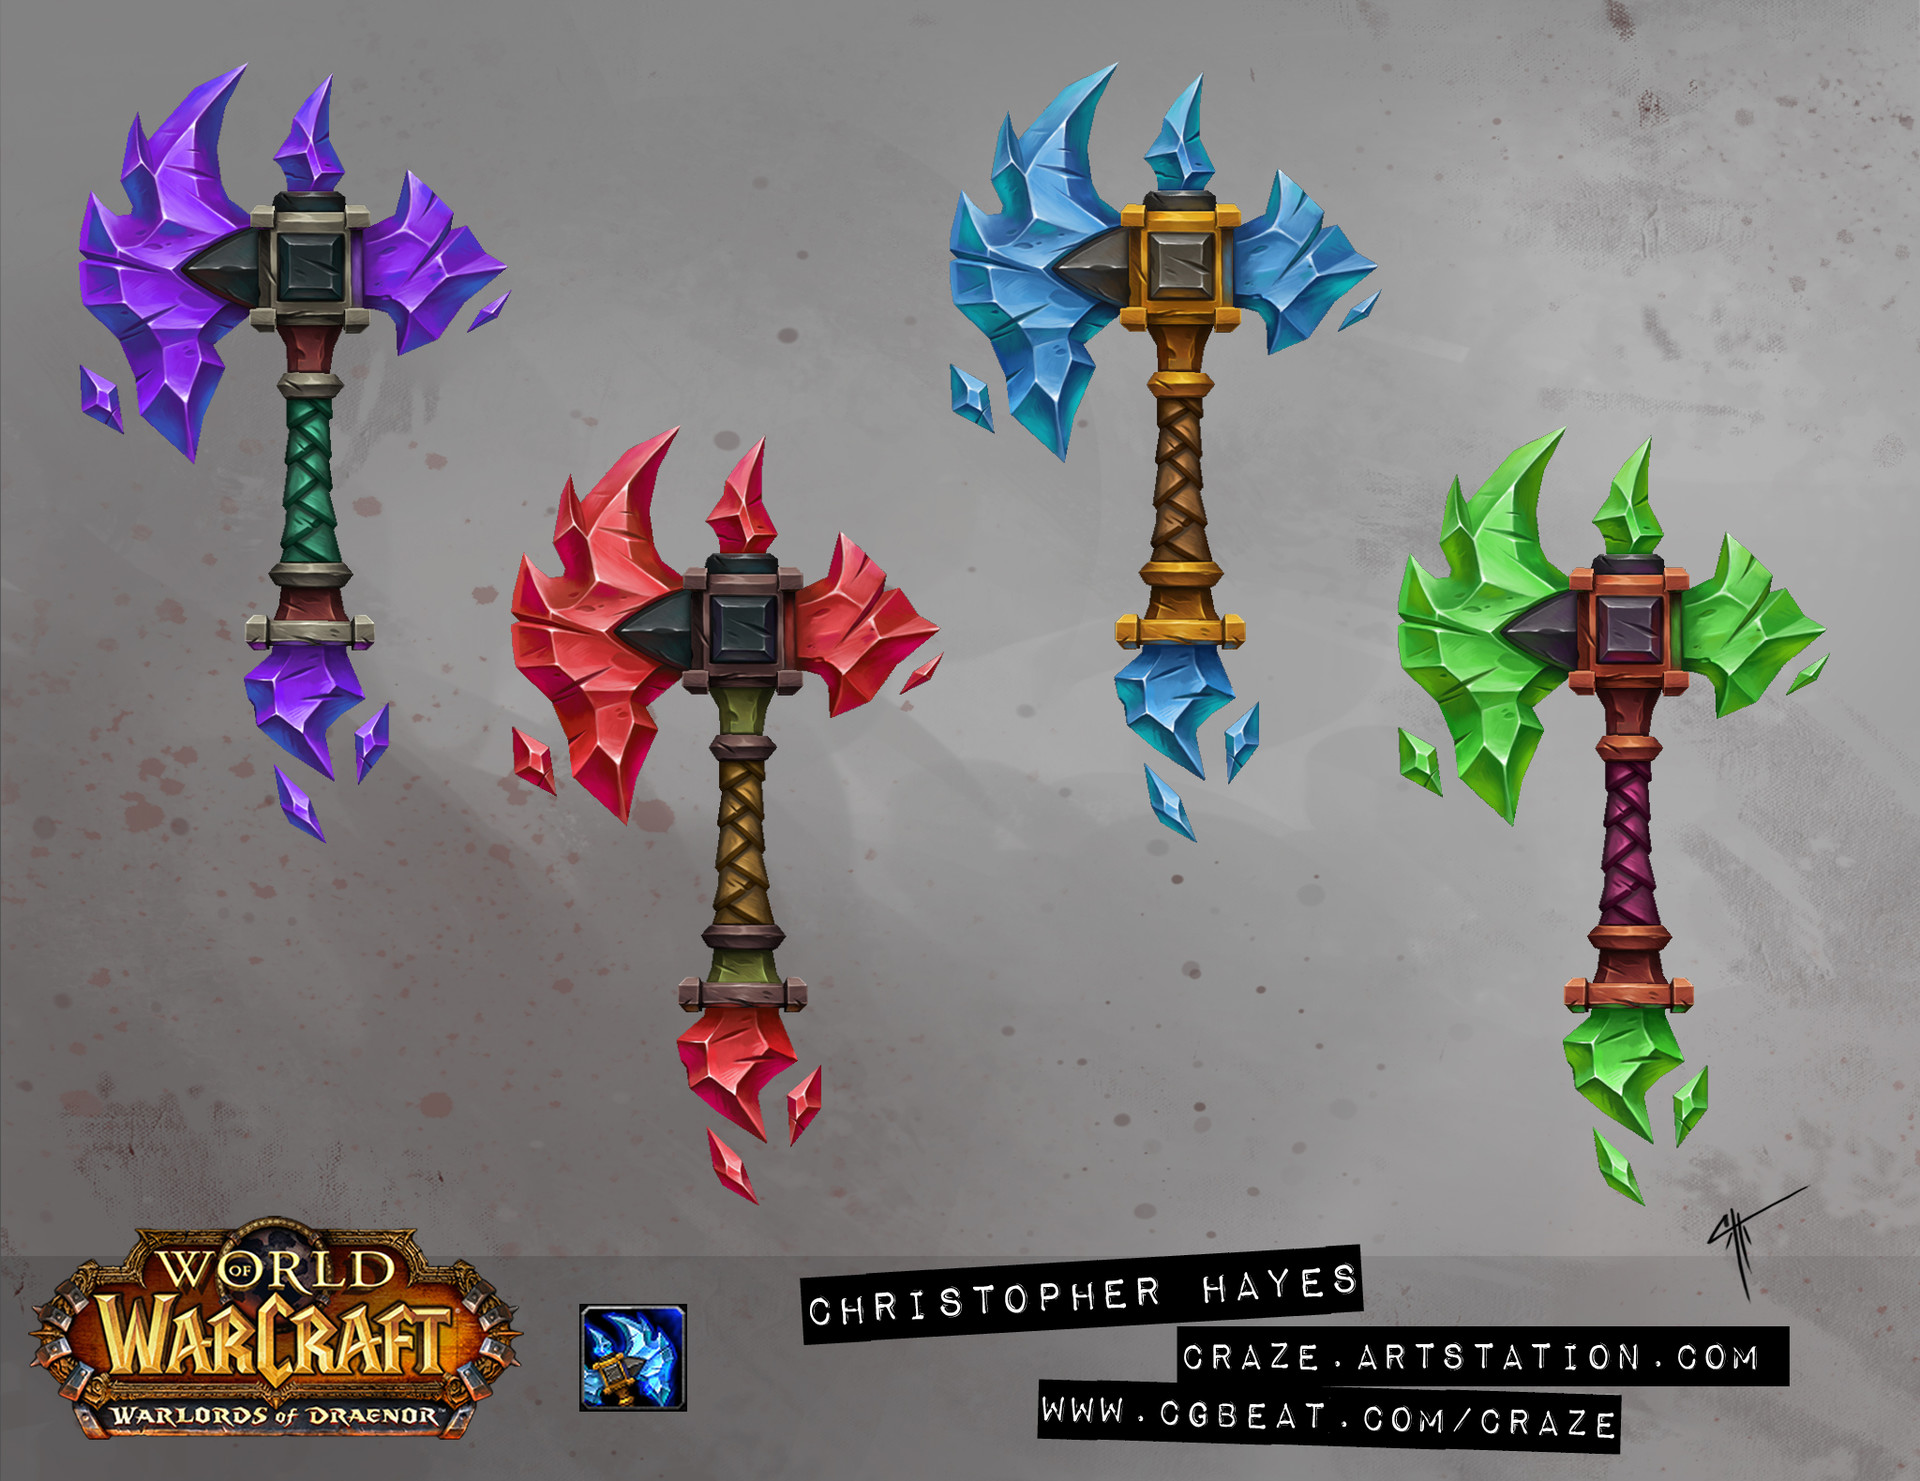 Christopher hayes crystal axe